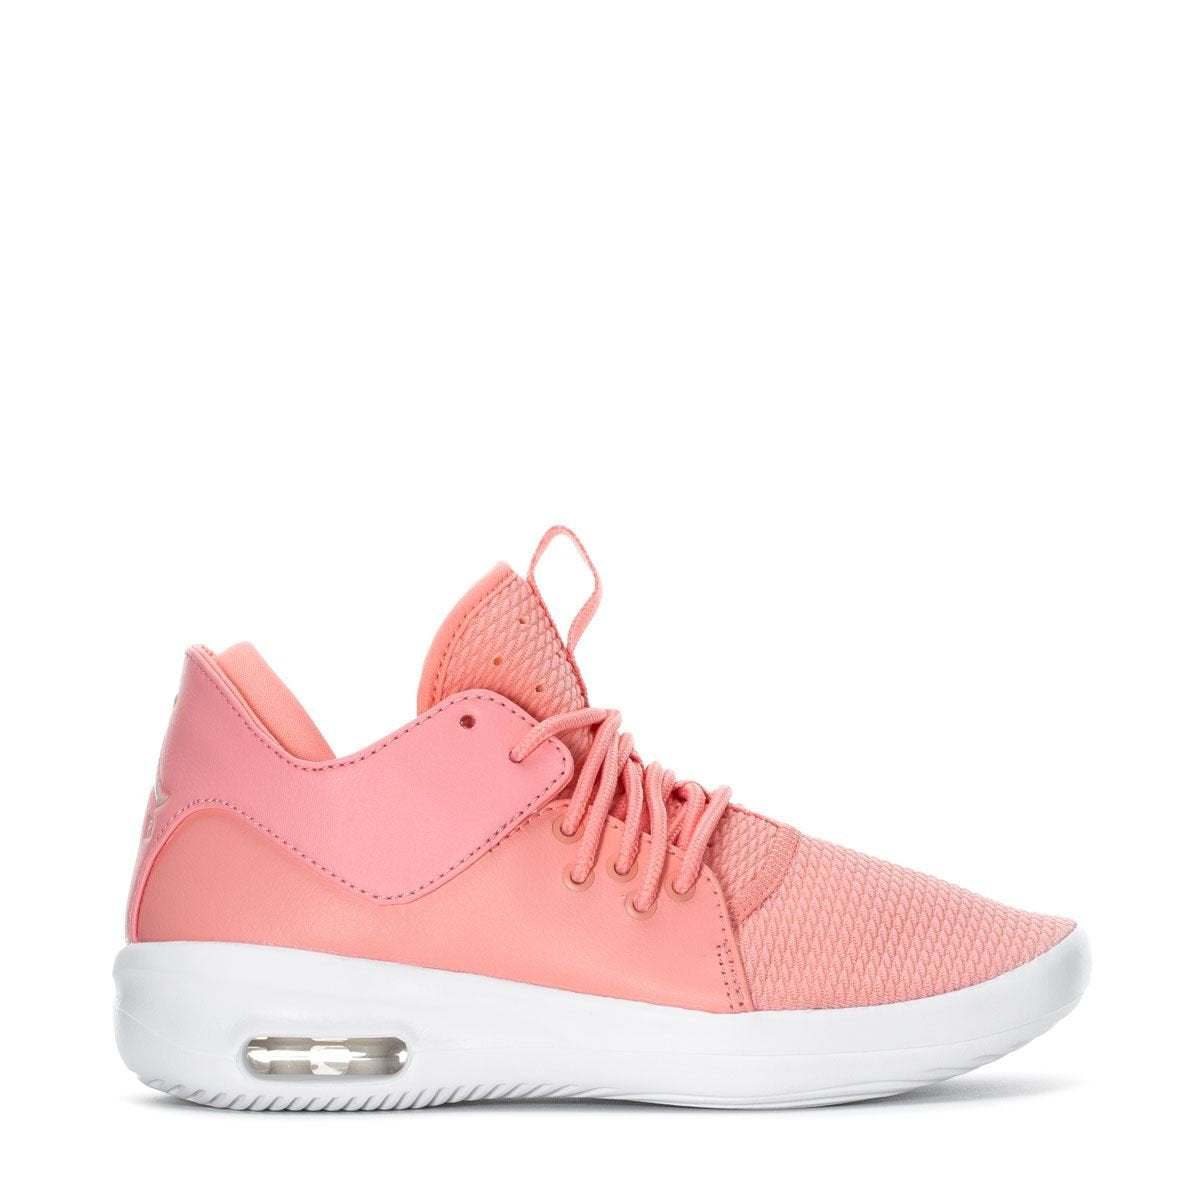 online retailer bf94e 7195a Nike Air Jordan First Class GG Bleached Coral Kids Youth Shoes Size 5.5Y